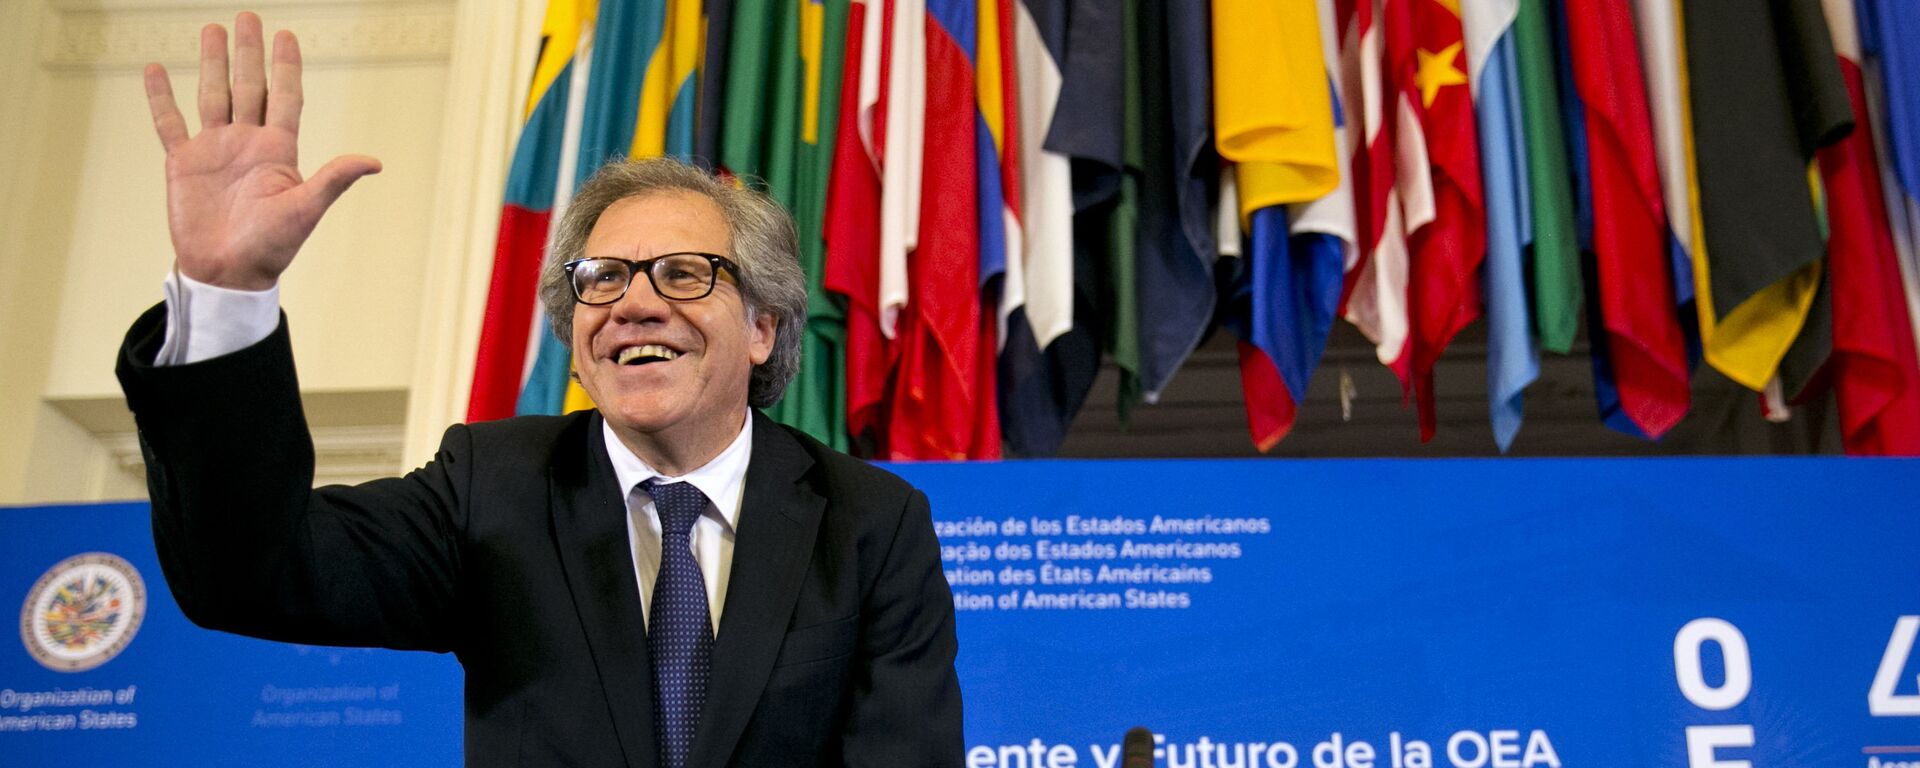 The new Organization of American States (OAS) Secretary General, former Uruguay Foreign Minister Luis Almagro, waves at the start of the general assembly's inaugural session in the Hall of the Americas, Monday June 15, 2015, at the OAS in Washington - Sputnik Mundo, 1920, 05.06.2021